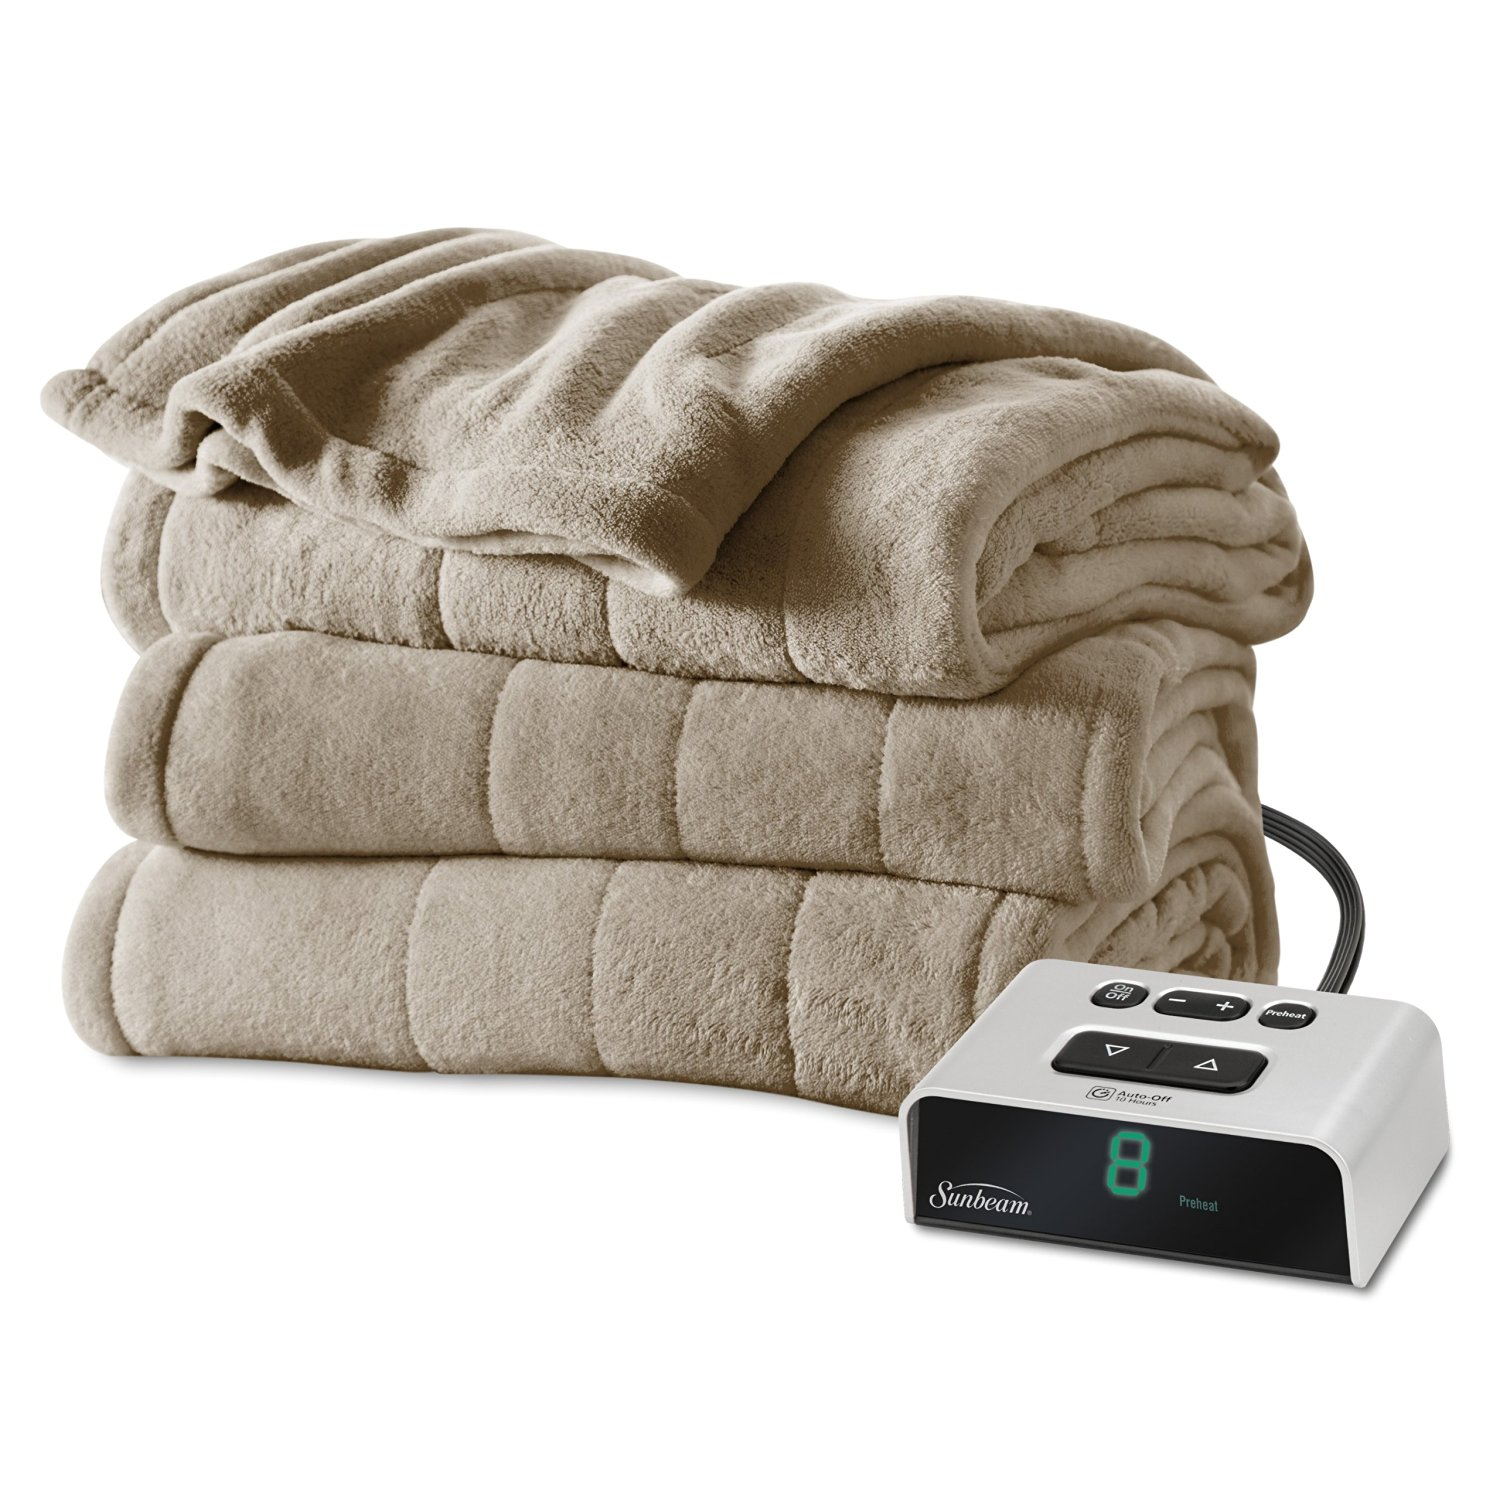 Biddeford Electric Blanket | Biddeford Queen Electric Blanket | Overstock Electric Blanket